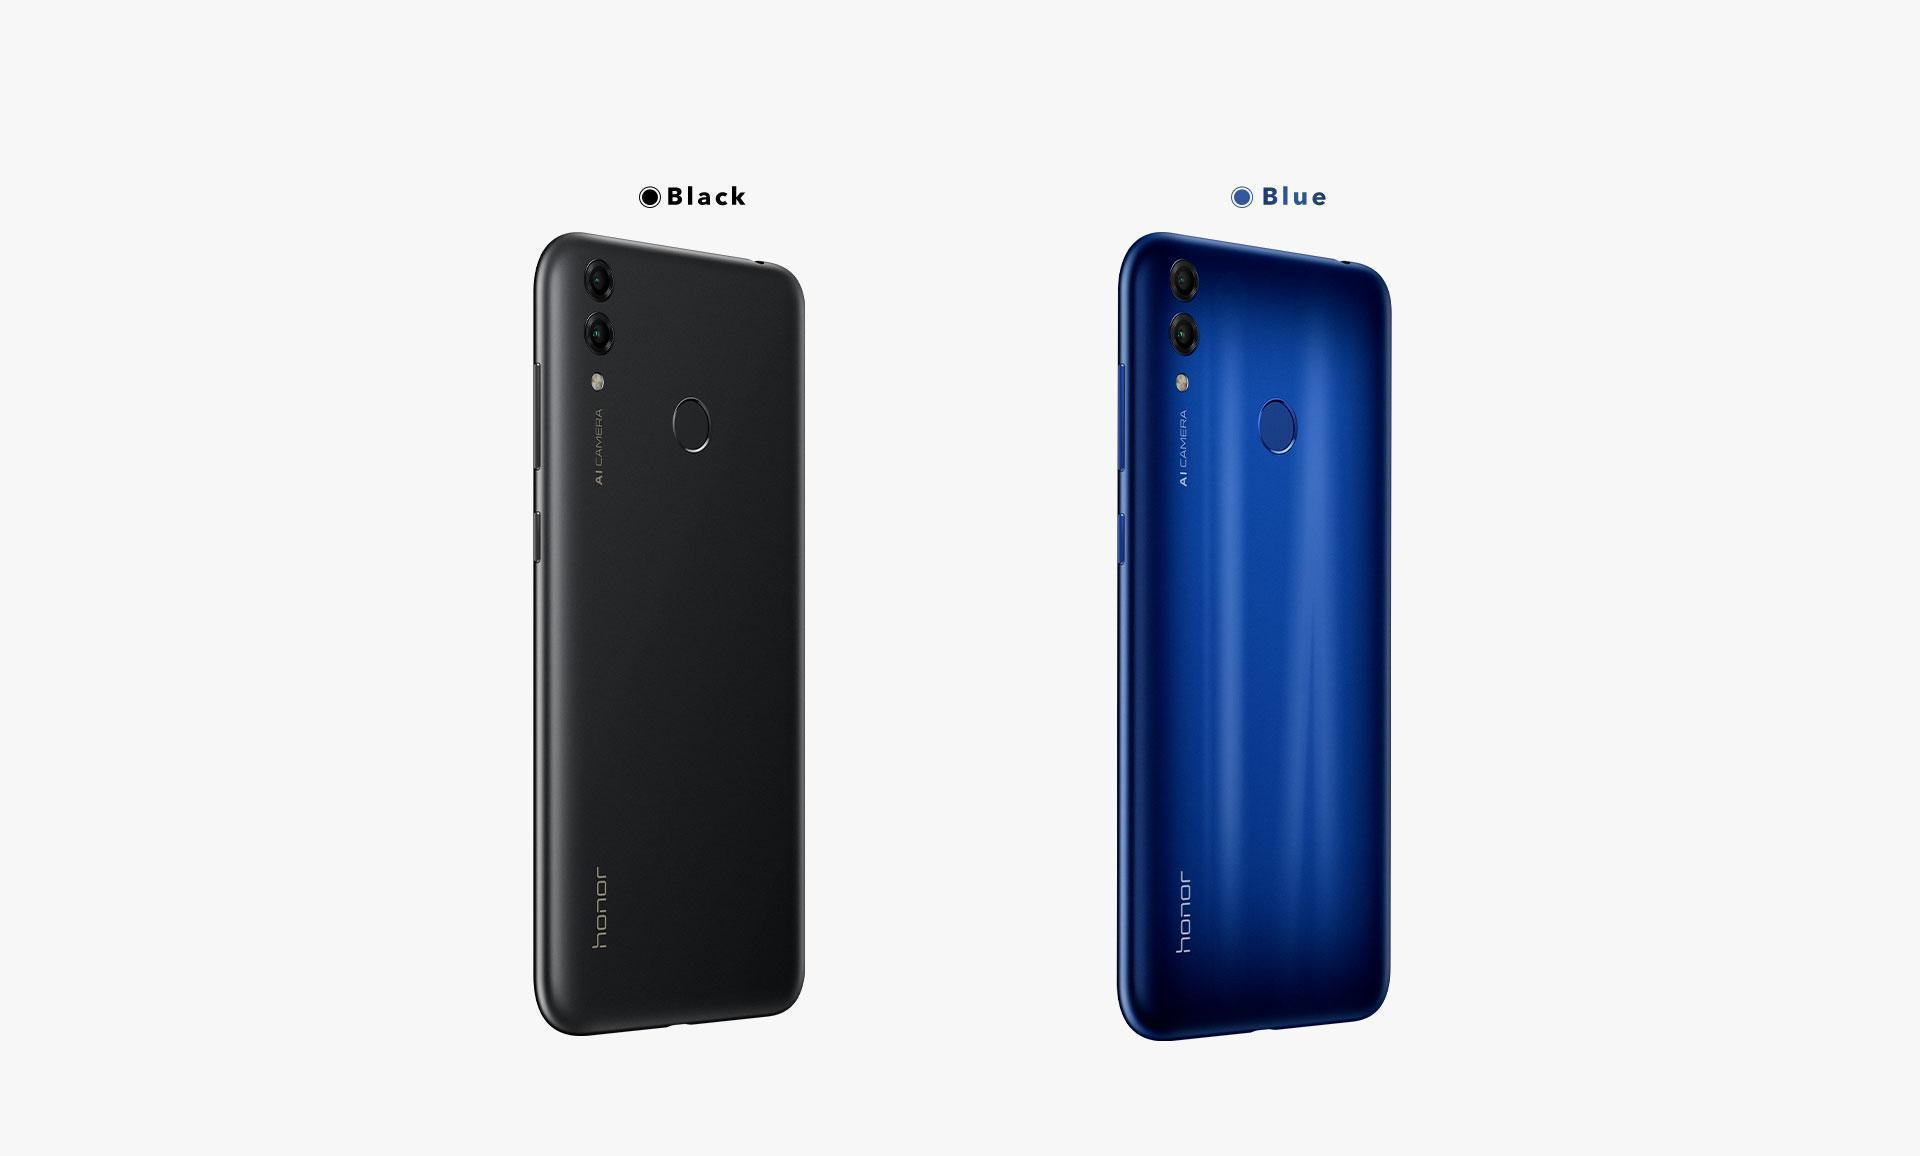 Honor 8C Black and Blue Colors